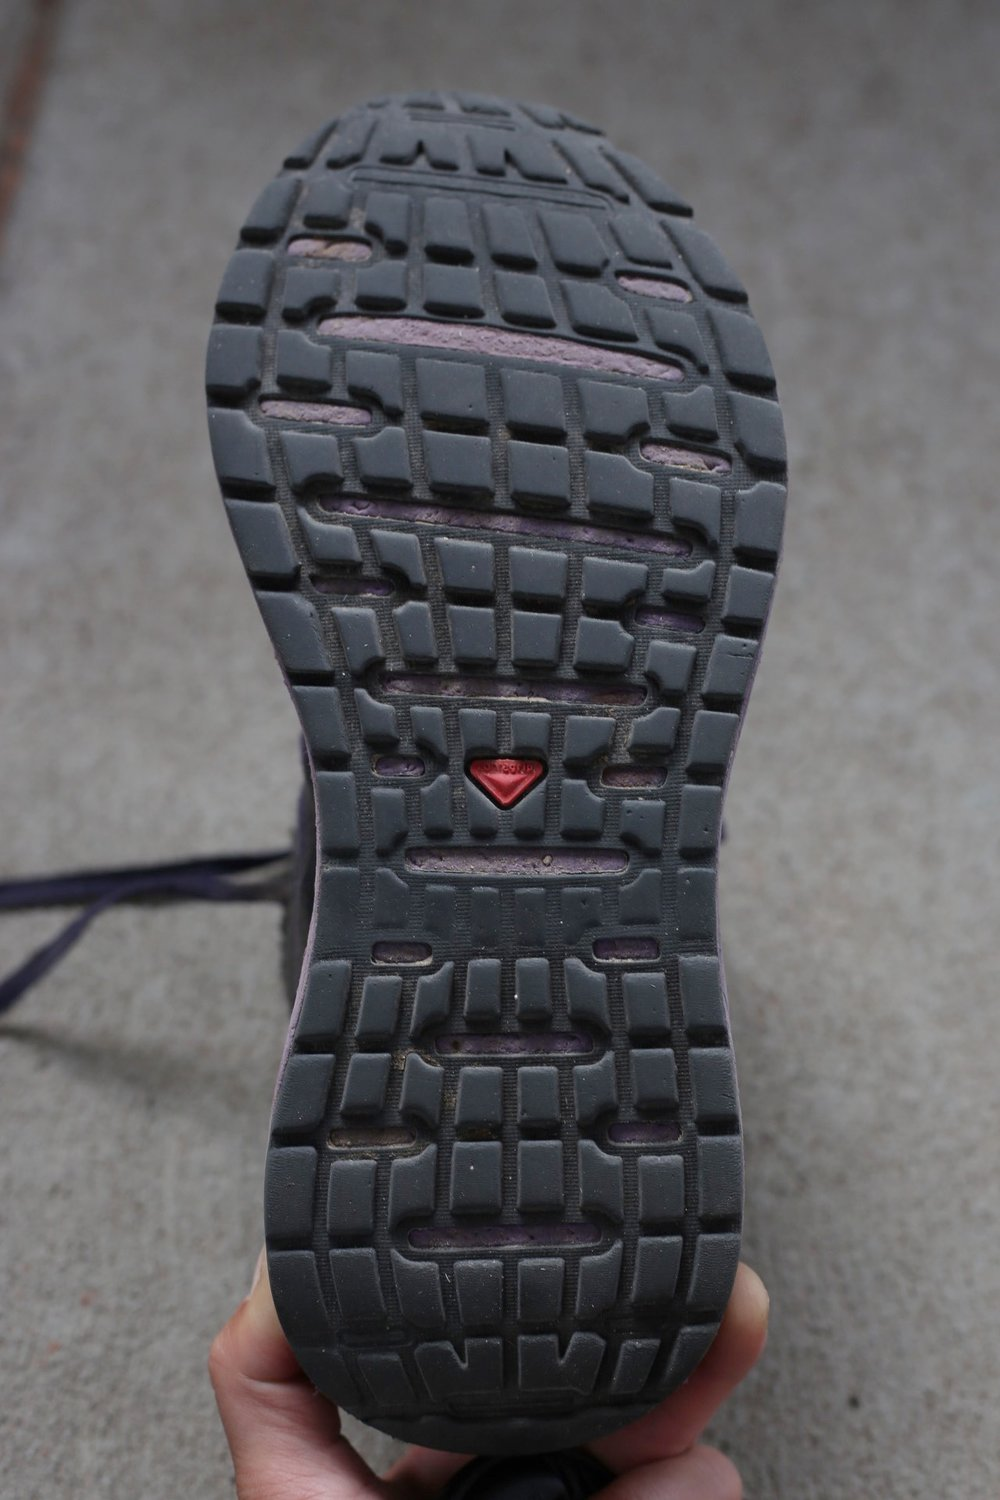 Tread of M.E.'s shoe after 750 miles on the CDT.